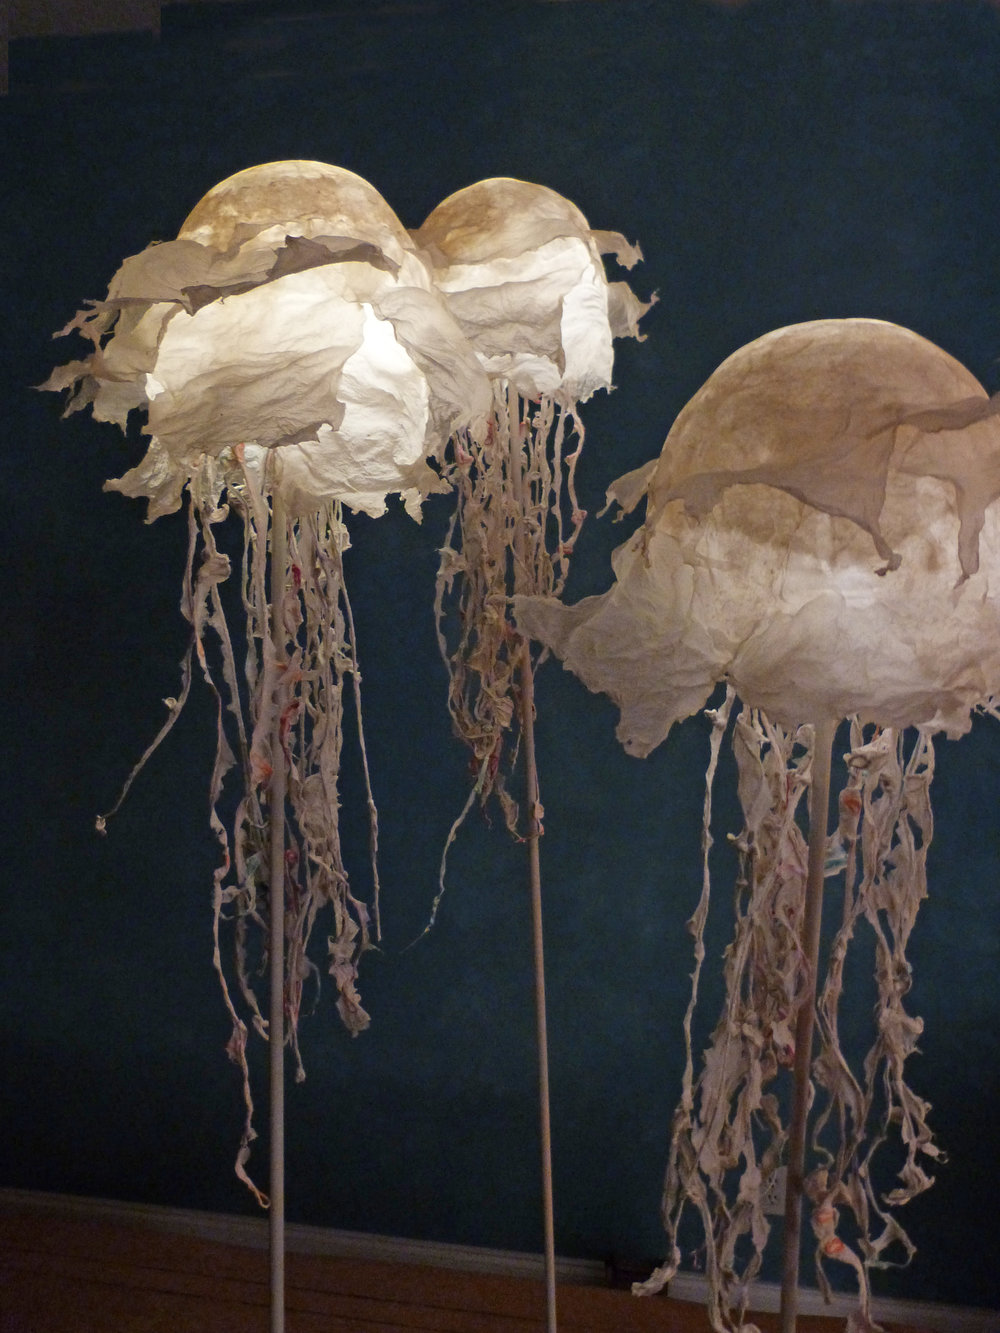 JELLIES+LARGE+P1020747.jpg